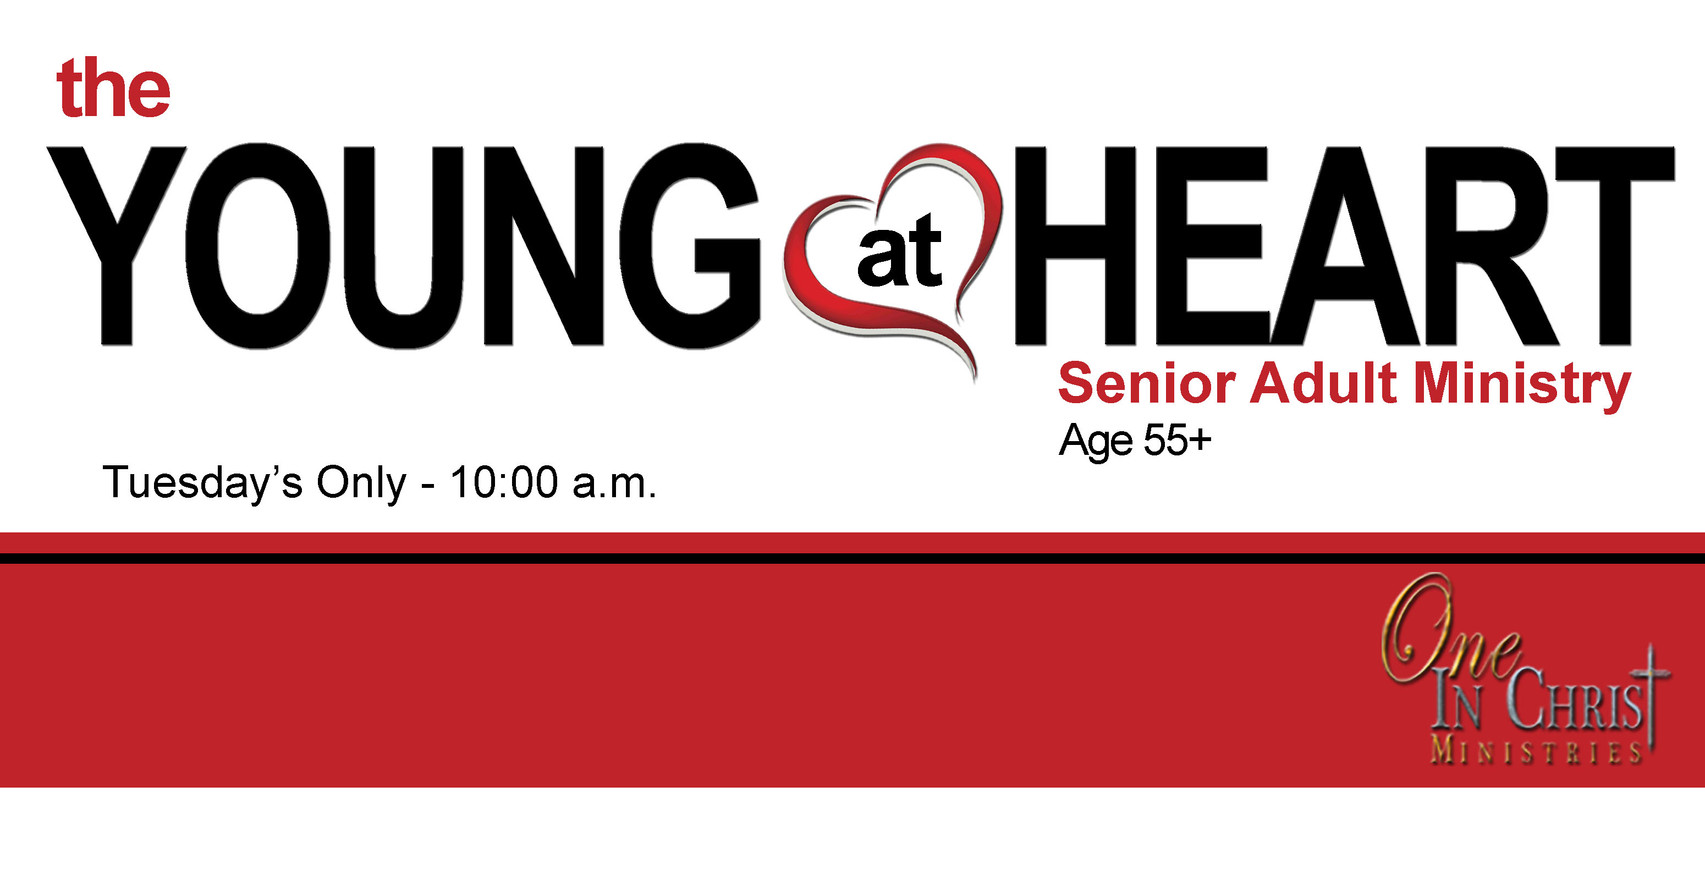 The%20Young%20at%20Heart%20Flyer%20for%2